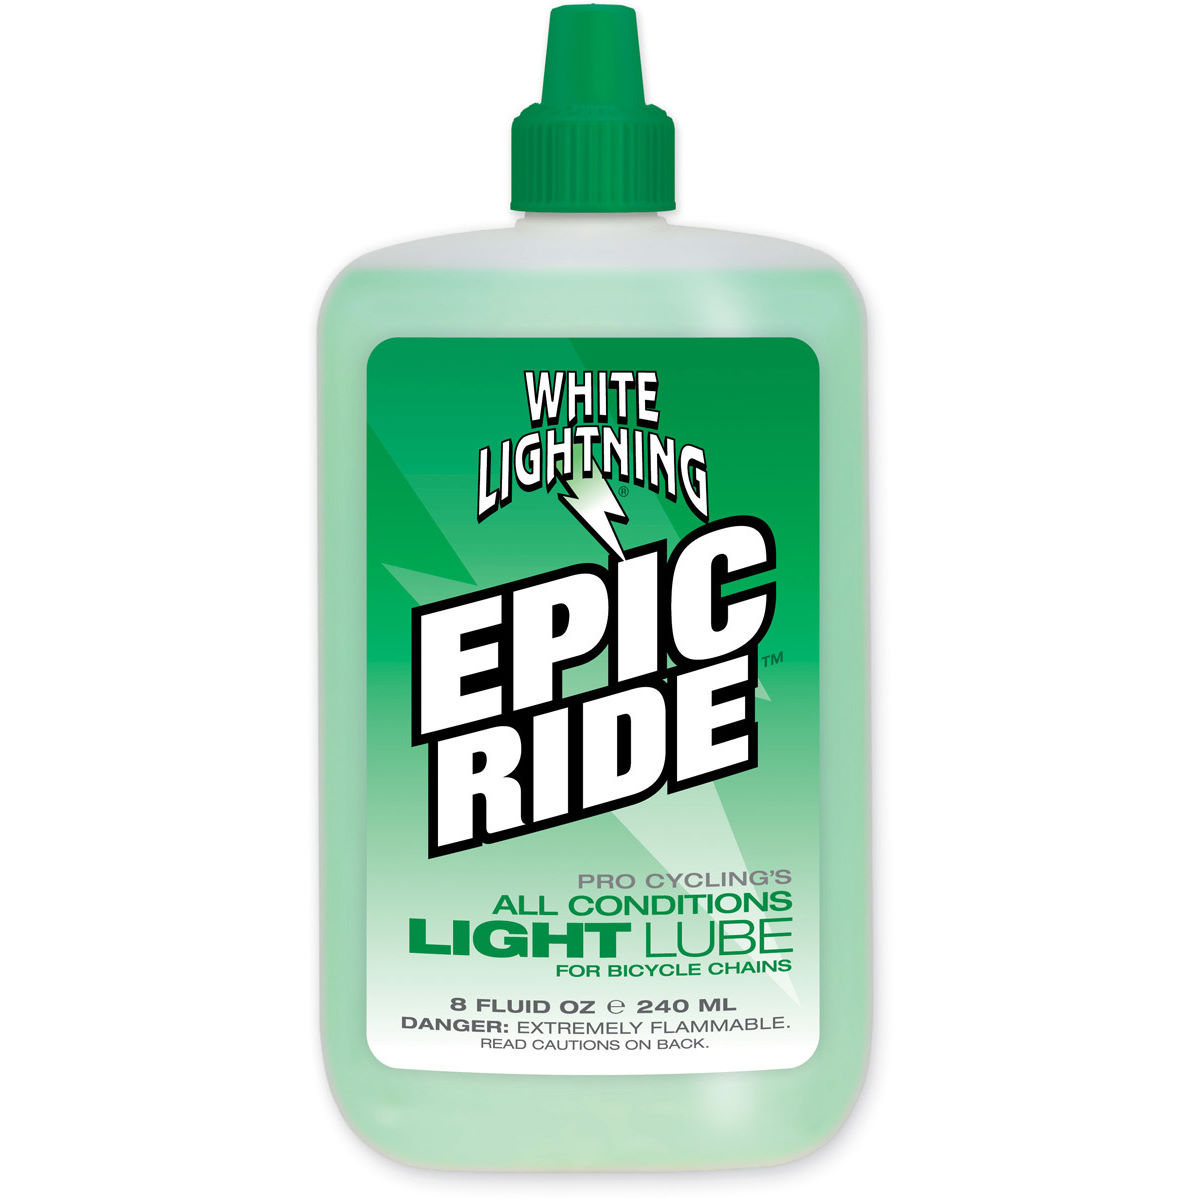 Lubrifiant White Lightning Epic Ride (240 ml) - 240ml Vert Lubrifiant vélo